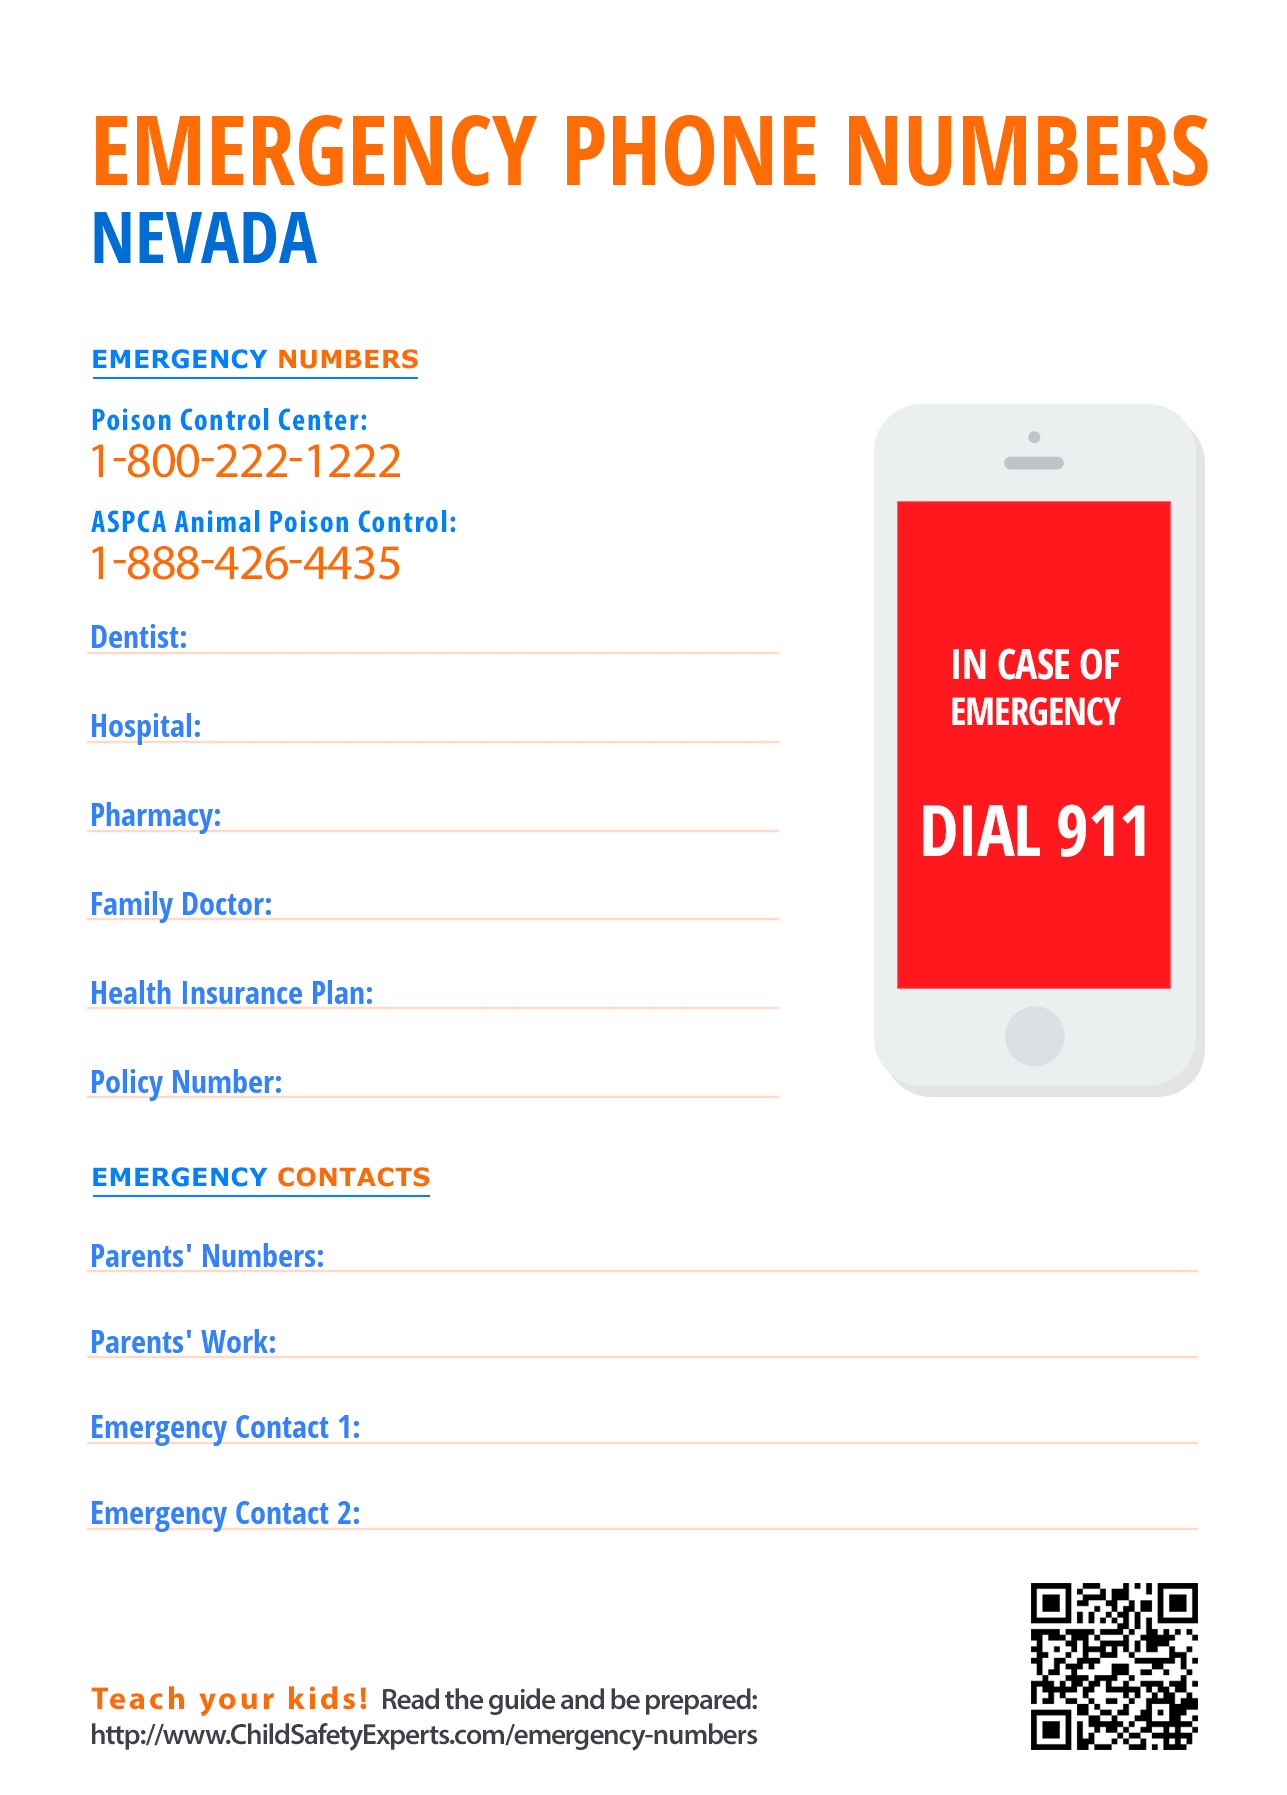 Important emergency phone numbers in Nevada